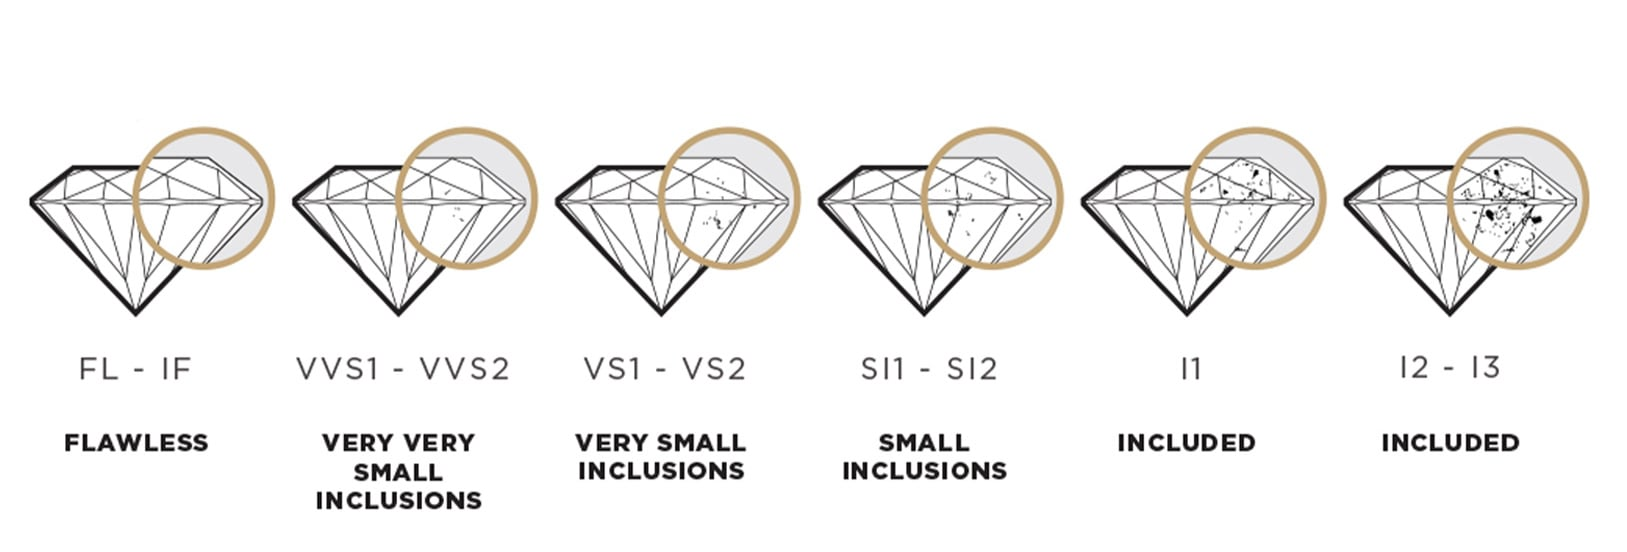 Image of the diamond clarity scale